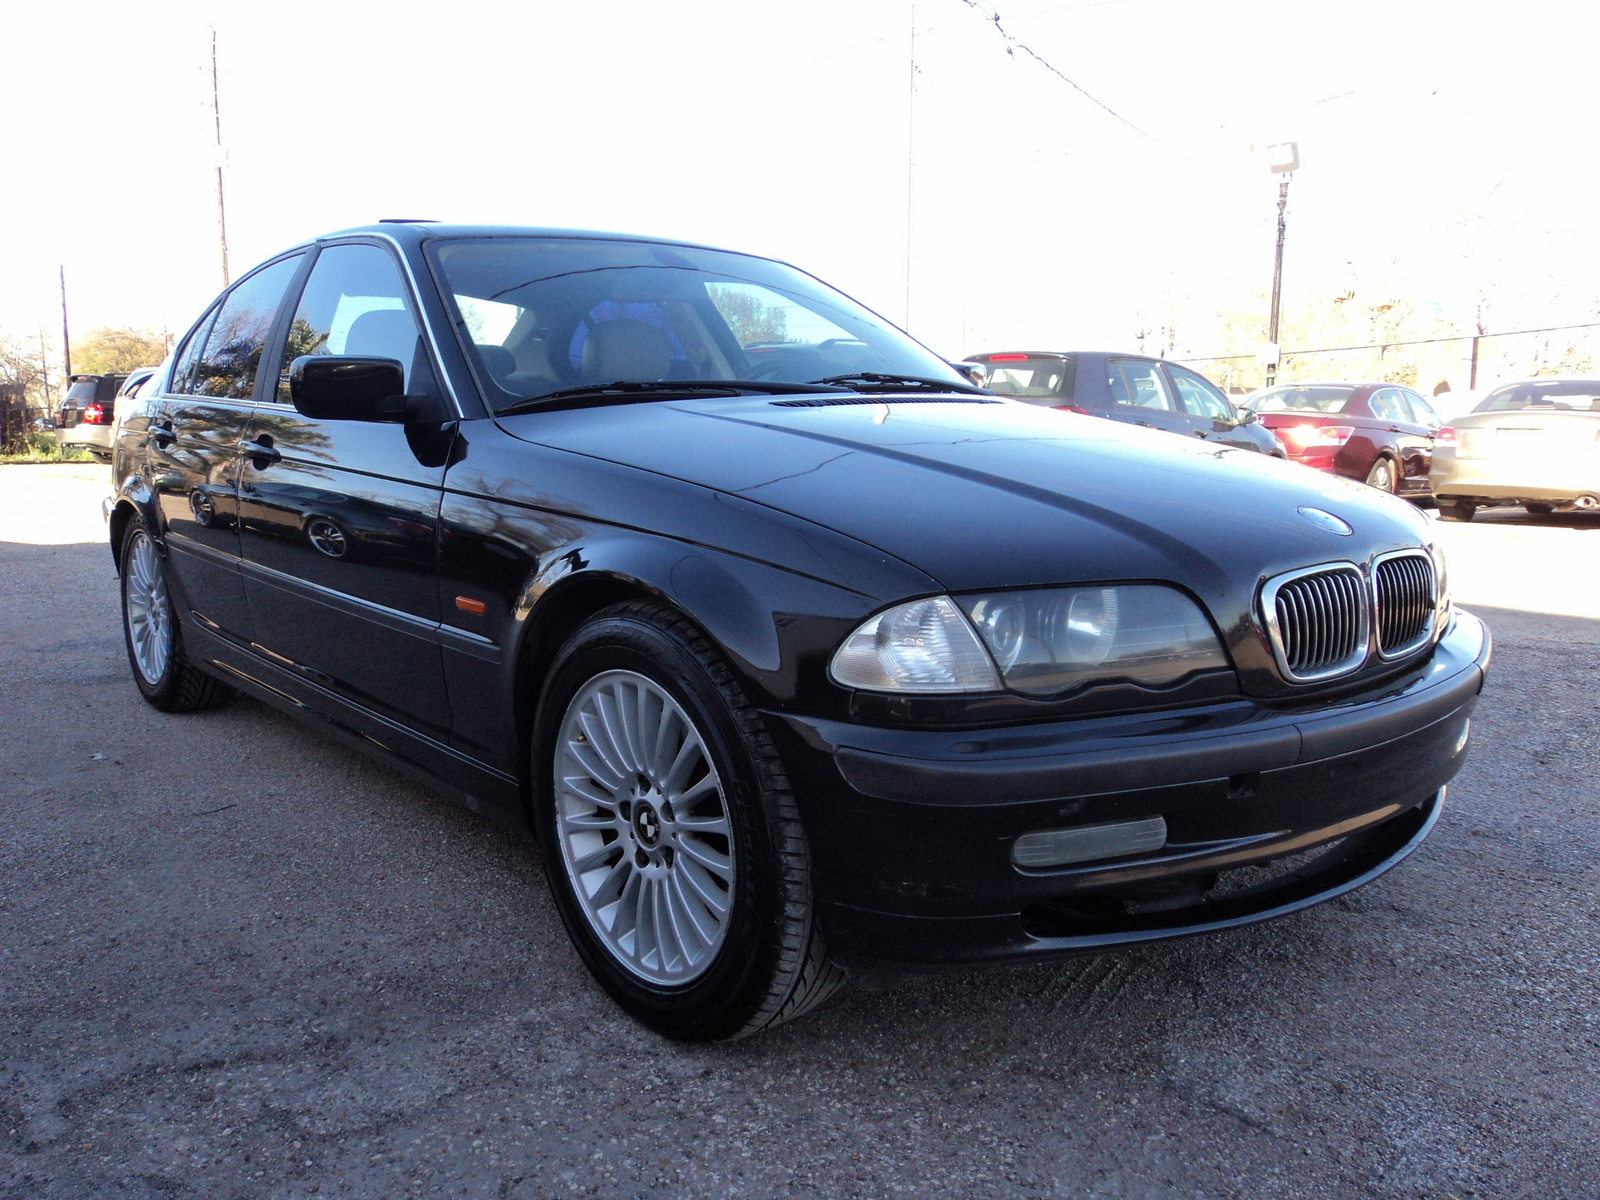 BMW 3 series 330xi 2001 photo - 1